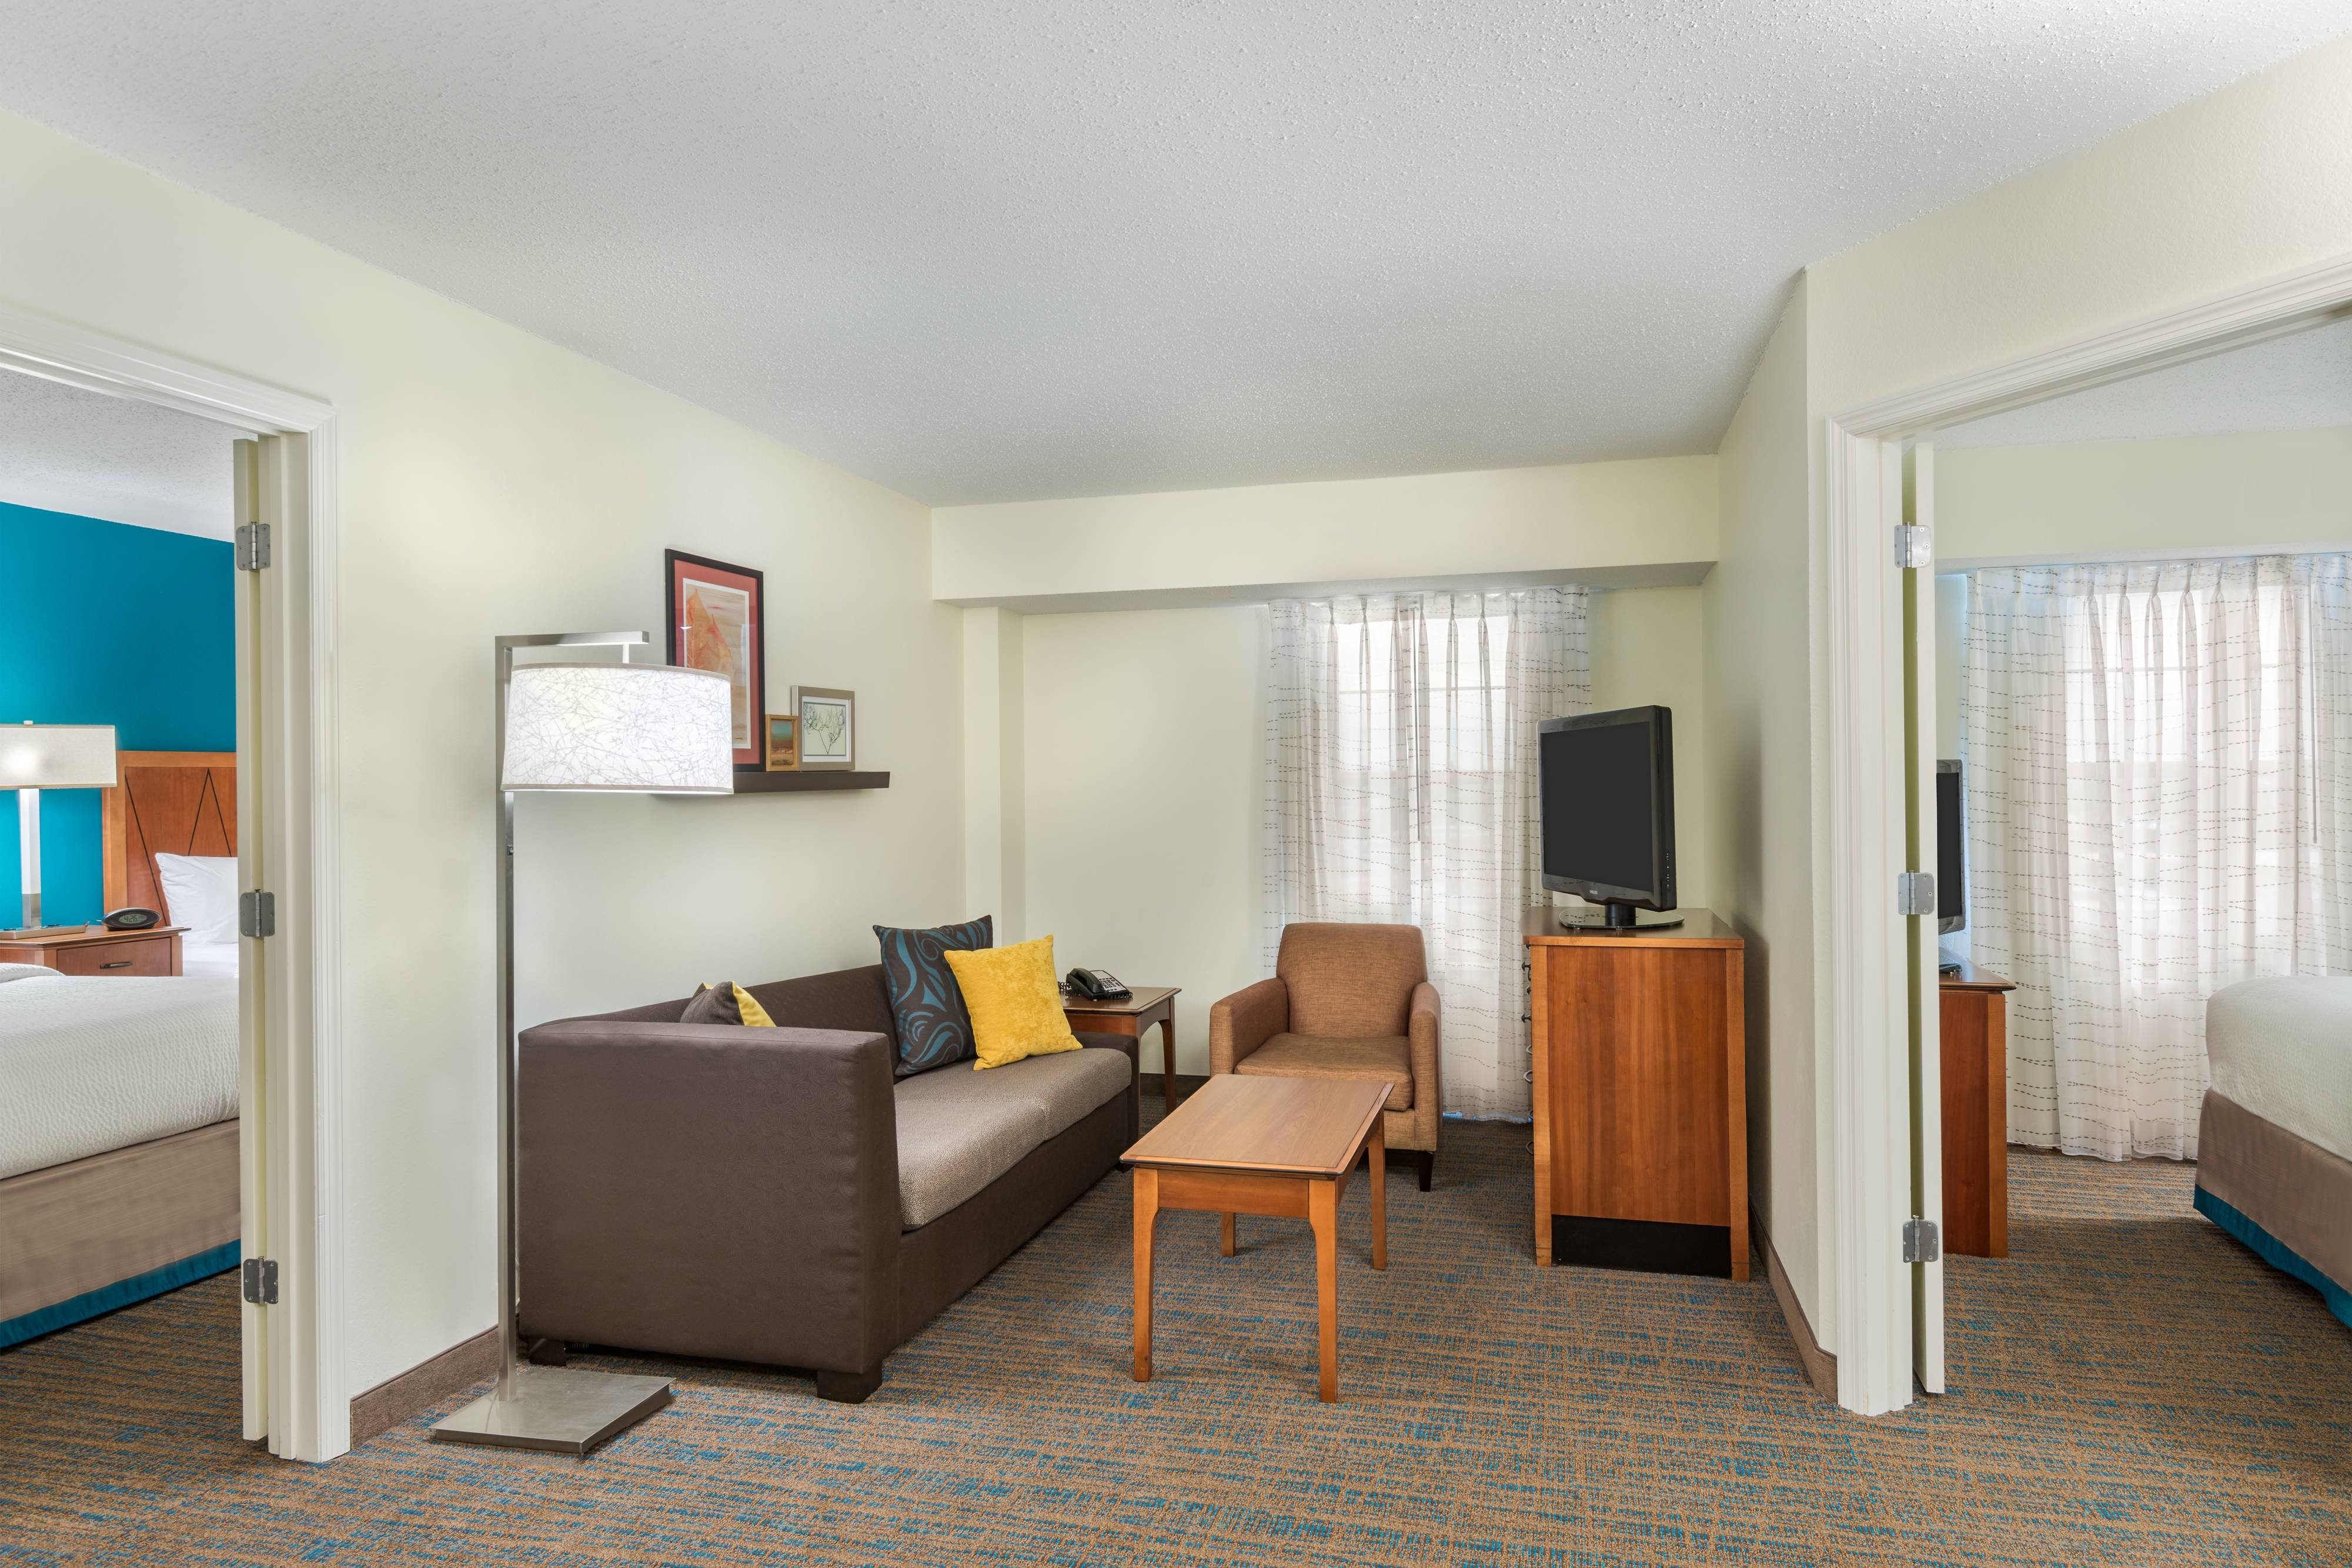 Best Hotel Rooms Amenities Residence Inn St Louis Downtown With Pictures